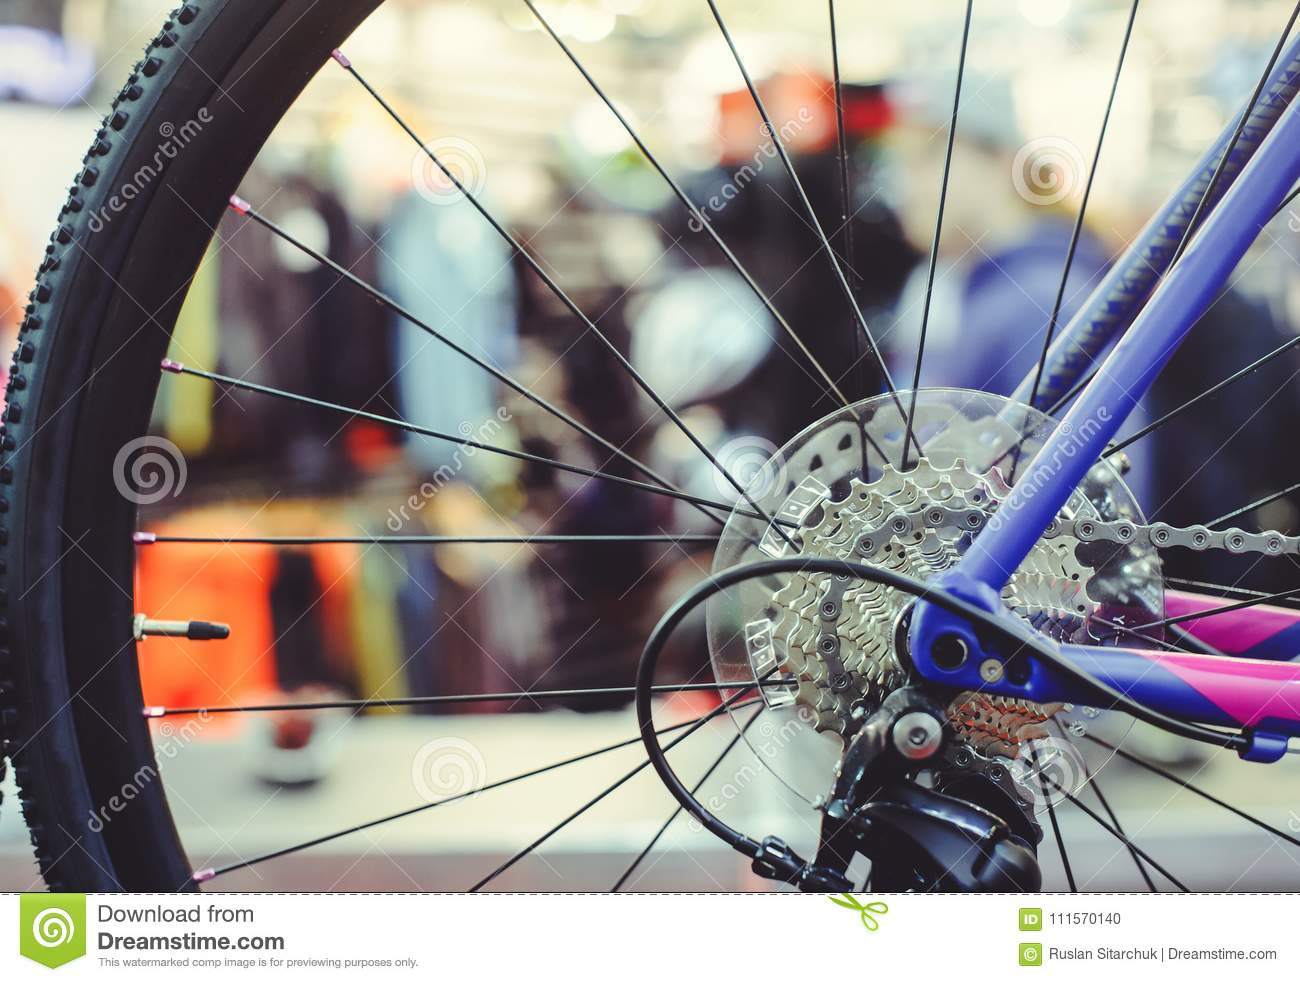 Closeup of a bicycle gears mechanism and chain on the rear wheel of mountain bike. Rear wheel cassette from a mountain bike. Close